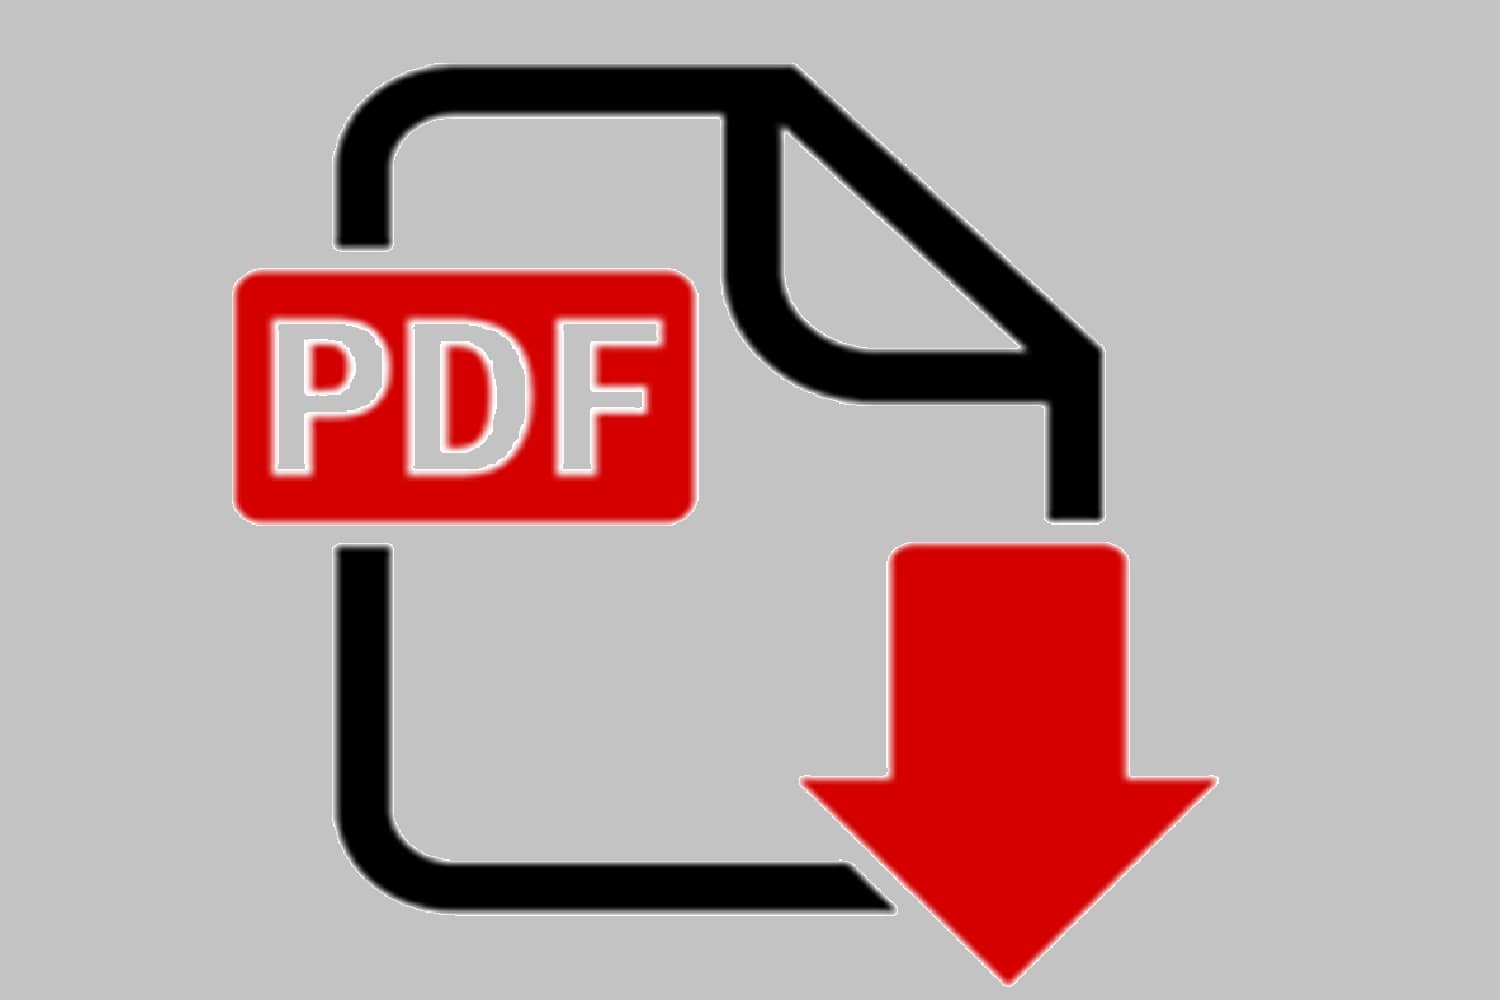 Top 10 Free PDF Editor Software in 2021 - News Web Zone